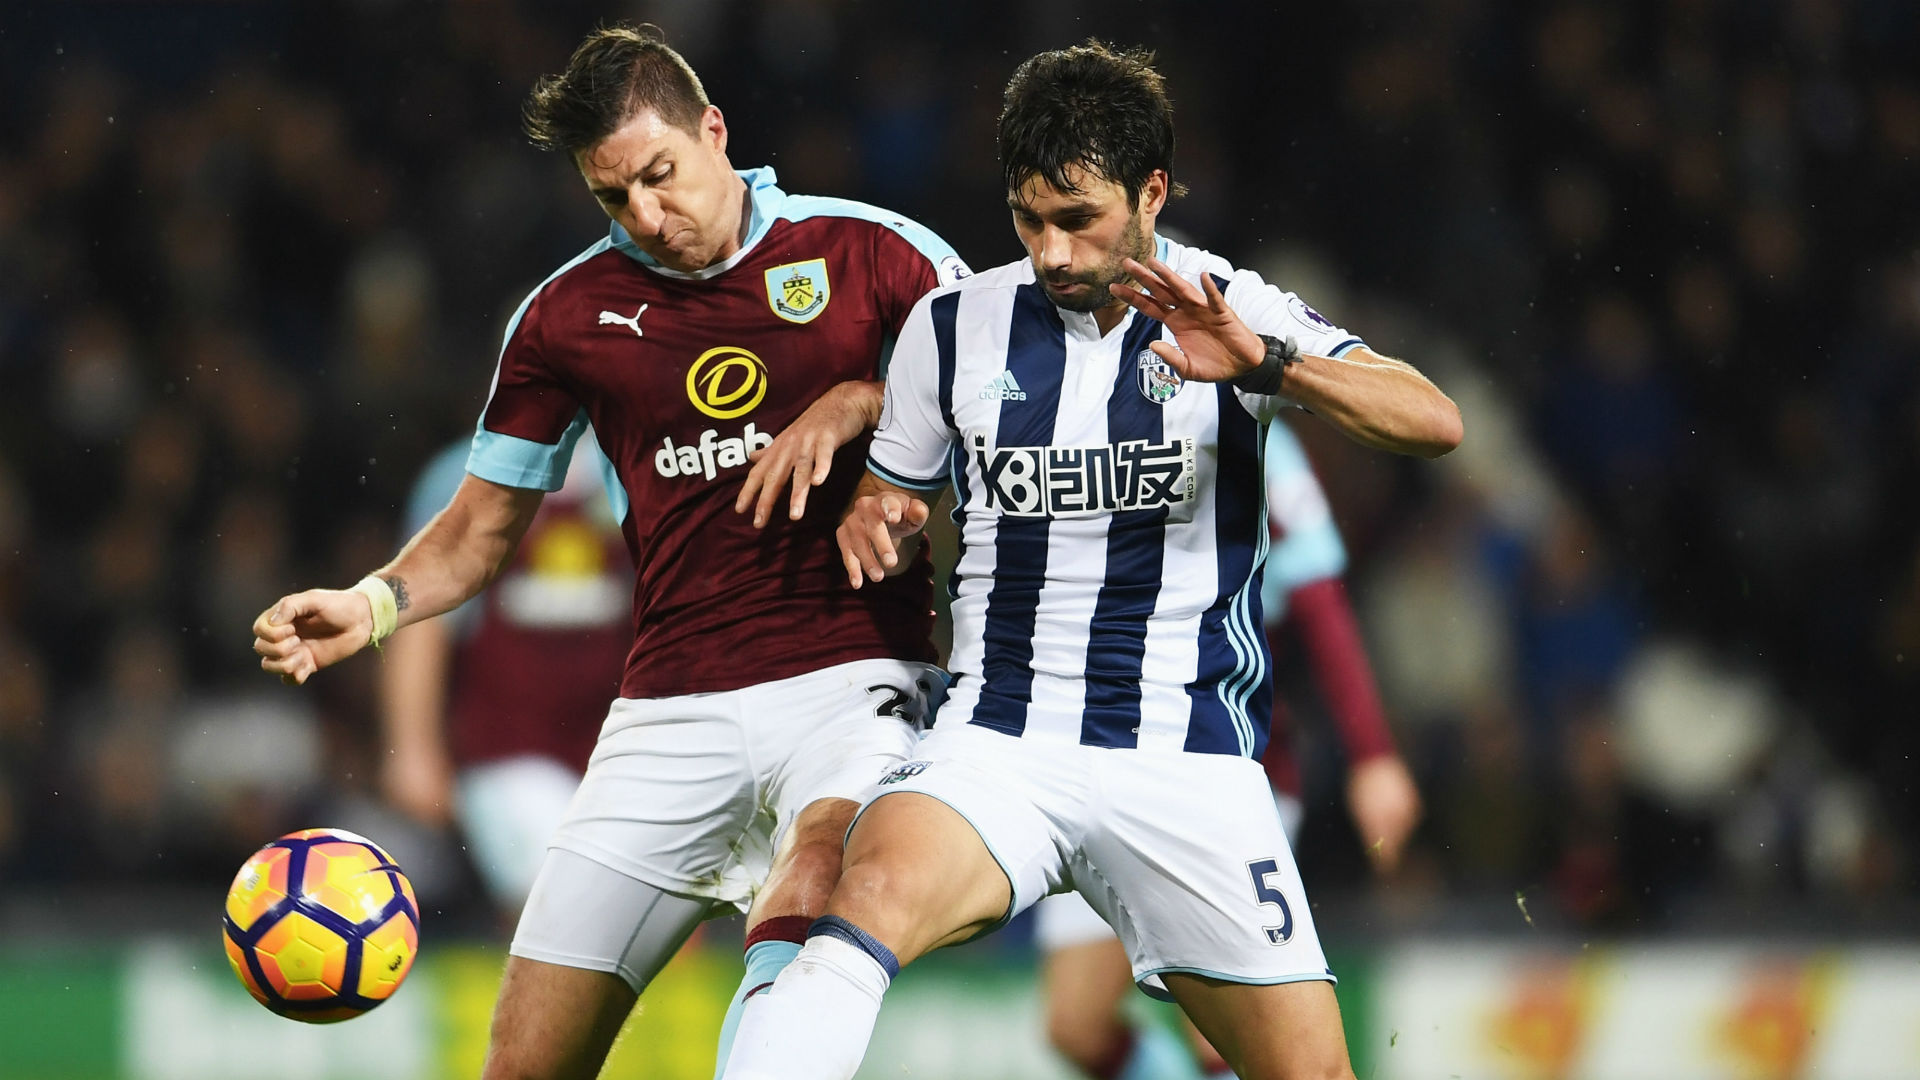 soi-keo-west-brom-vs-burnley-luc-23h30-ngay-19-10-2020